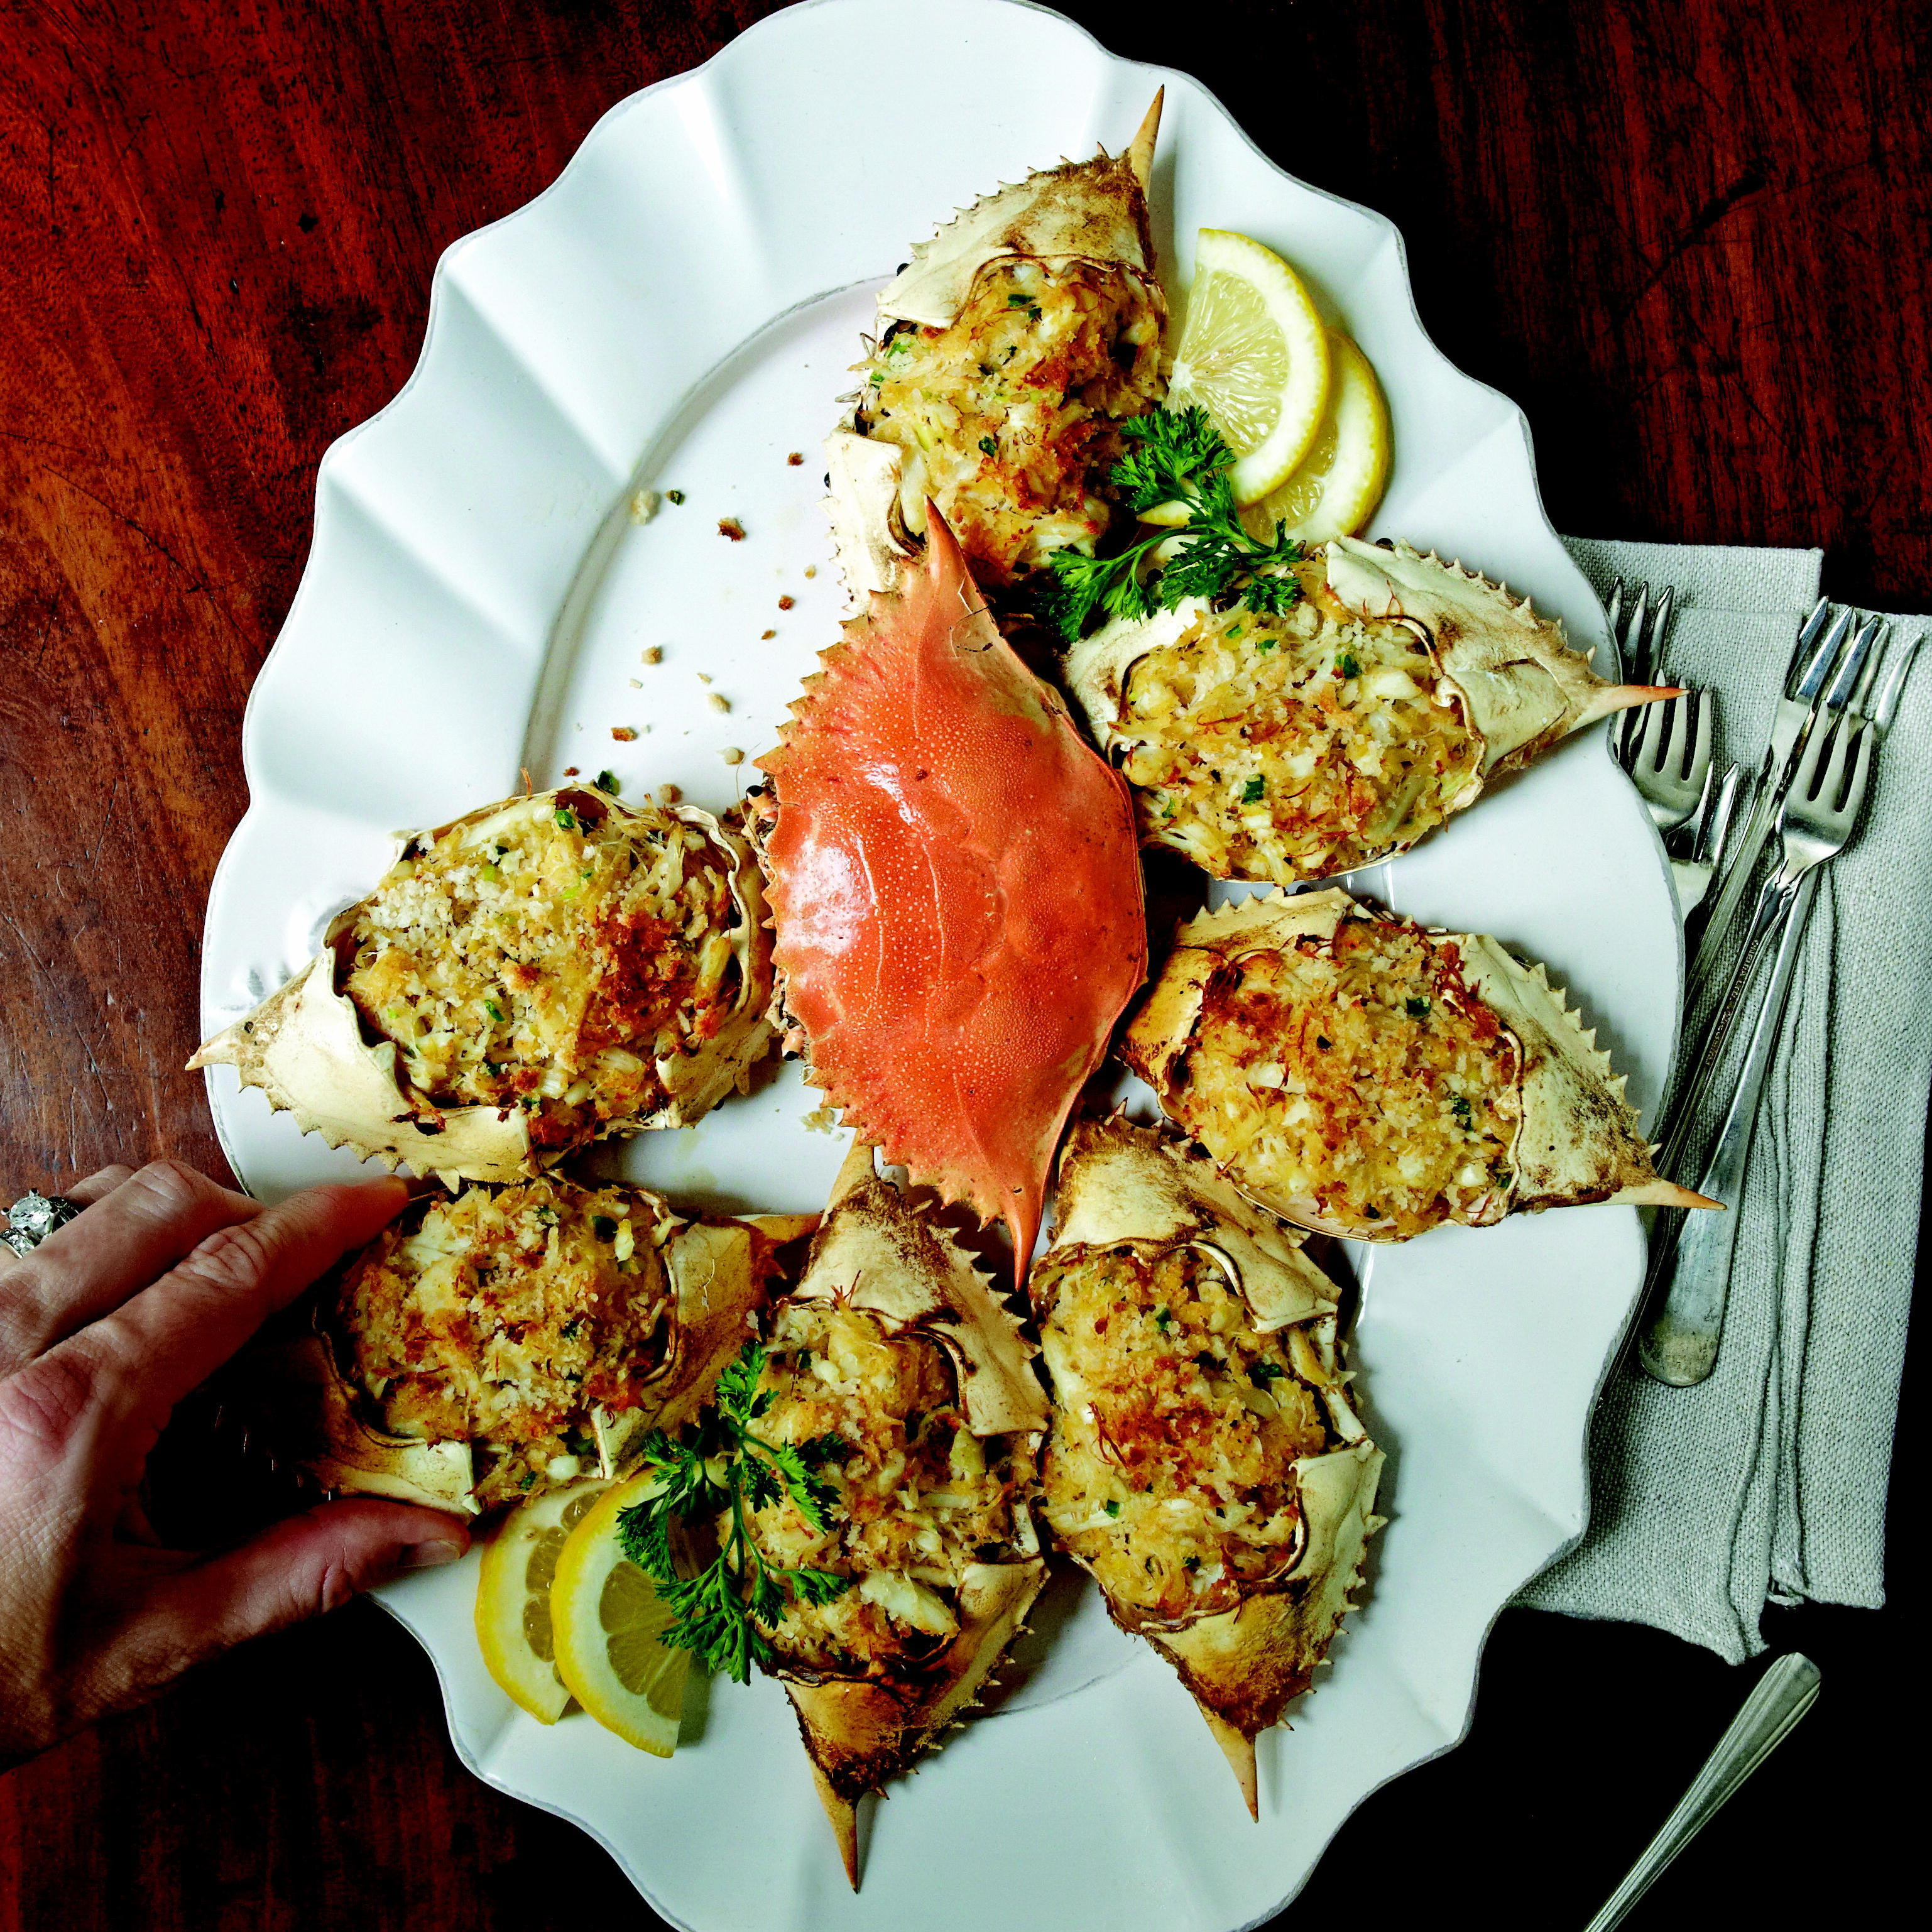 The Lee brothers like to serve deviled crab in baked crab shells, but the same recipe can also be used to make excellent deviled crab cakes.